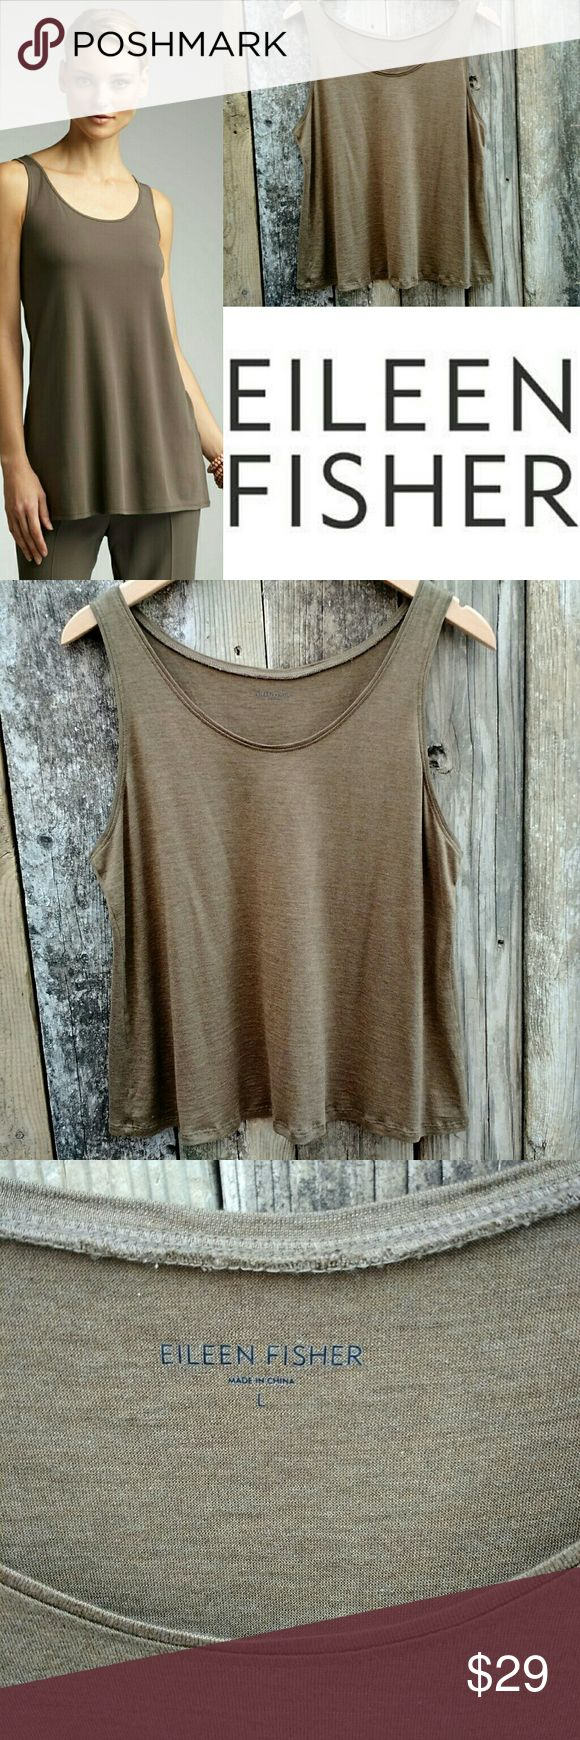 Eileen Fisher Silk Knit Shimmer Tank Beautiful, floating, lightweight chestnut colored tank with a light shimmery quality. Size Large. 70% Silk. 30% Cotton. Chestnut is a warm brown that is very flattering on all skin tones. Excellent condition. Fabric tag missing so marked to sell price. Eileen Fisher Tops Tank Tops